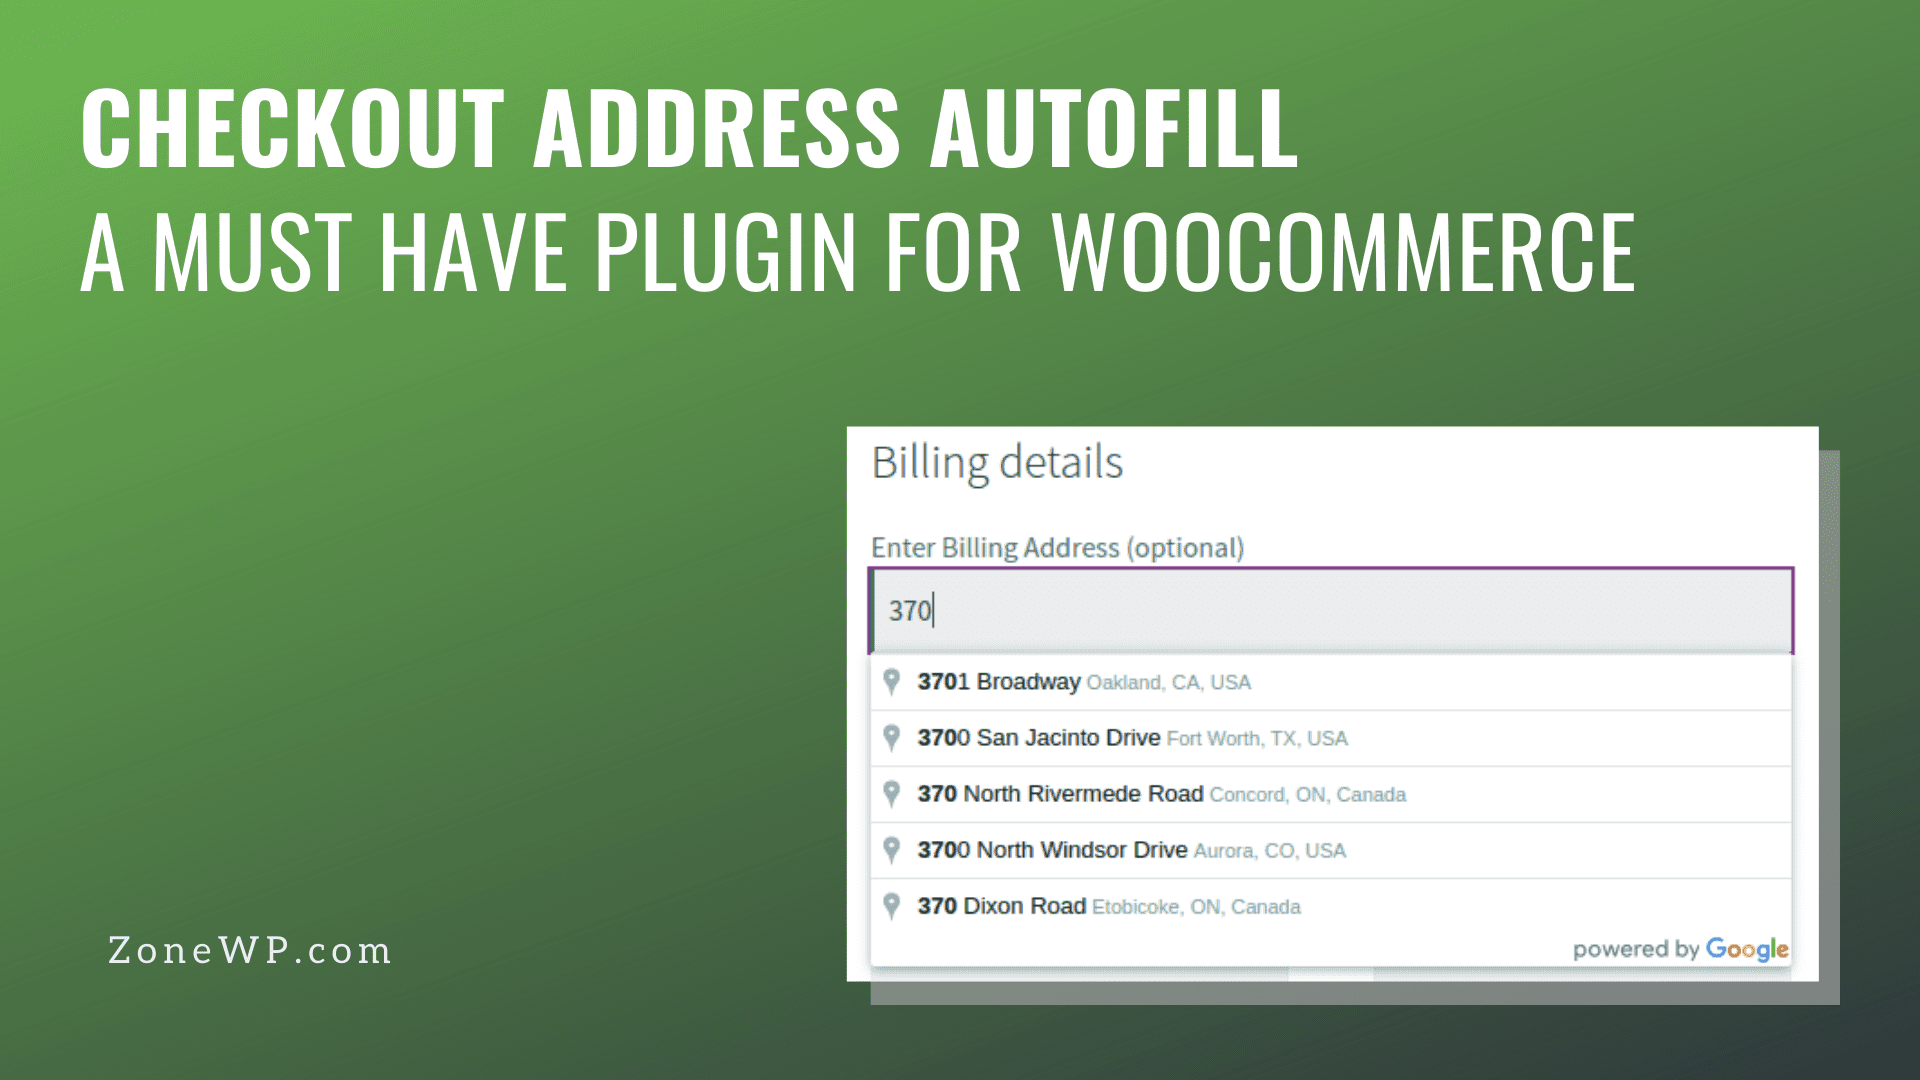 Checkout address autofill A must have plugin for woocommerce